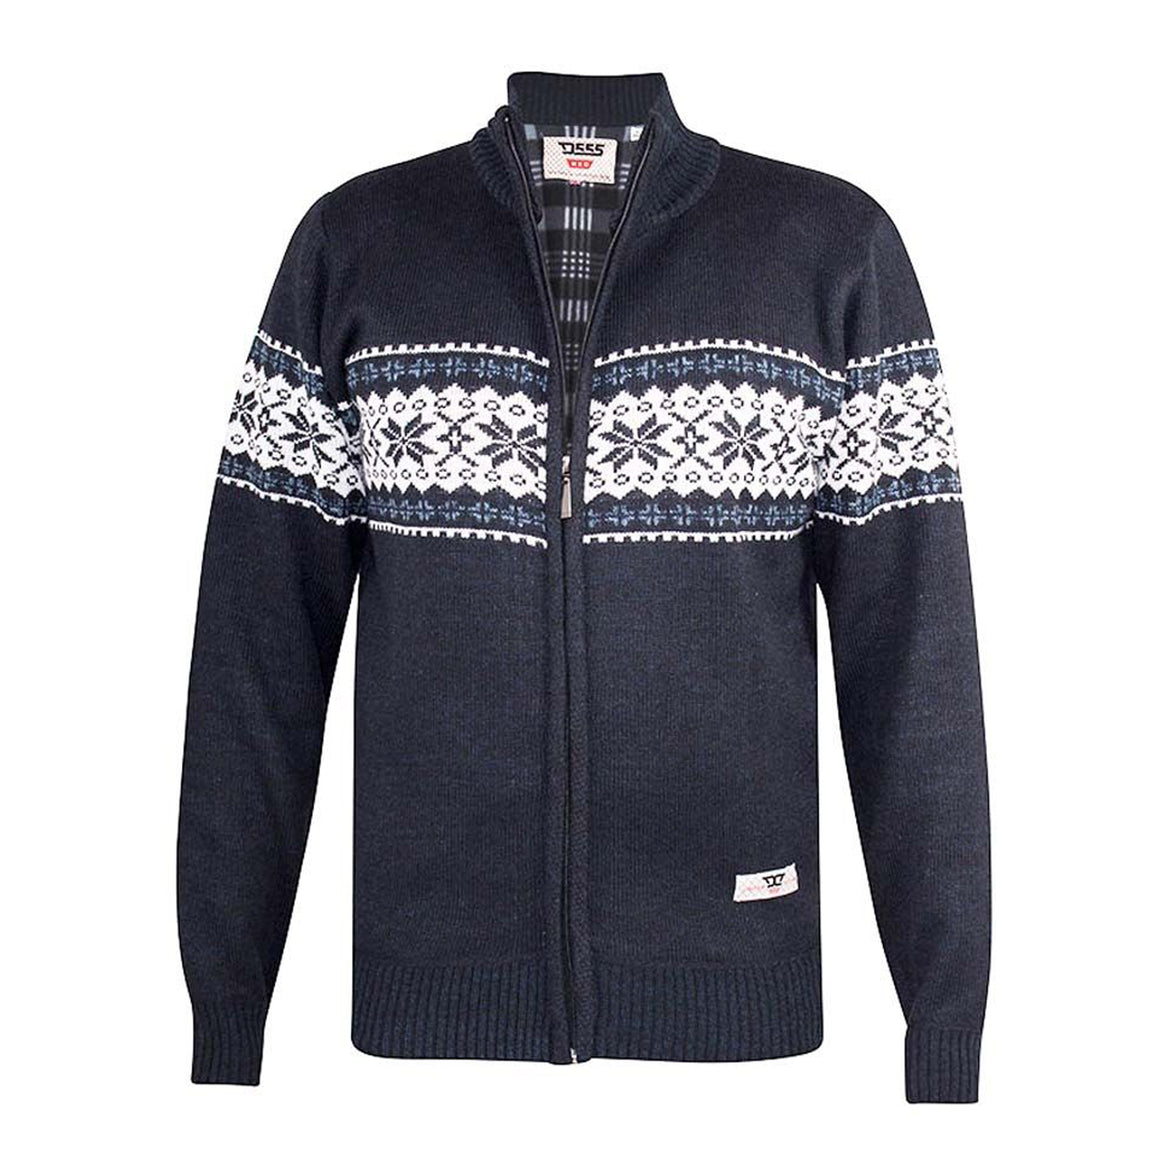 Campbell Fleece Lined Cardigan for Men in Navy Marl